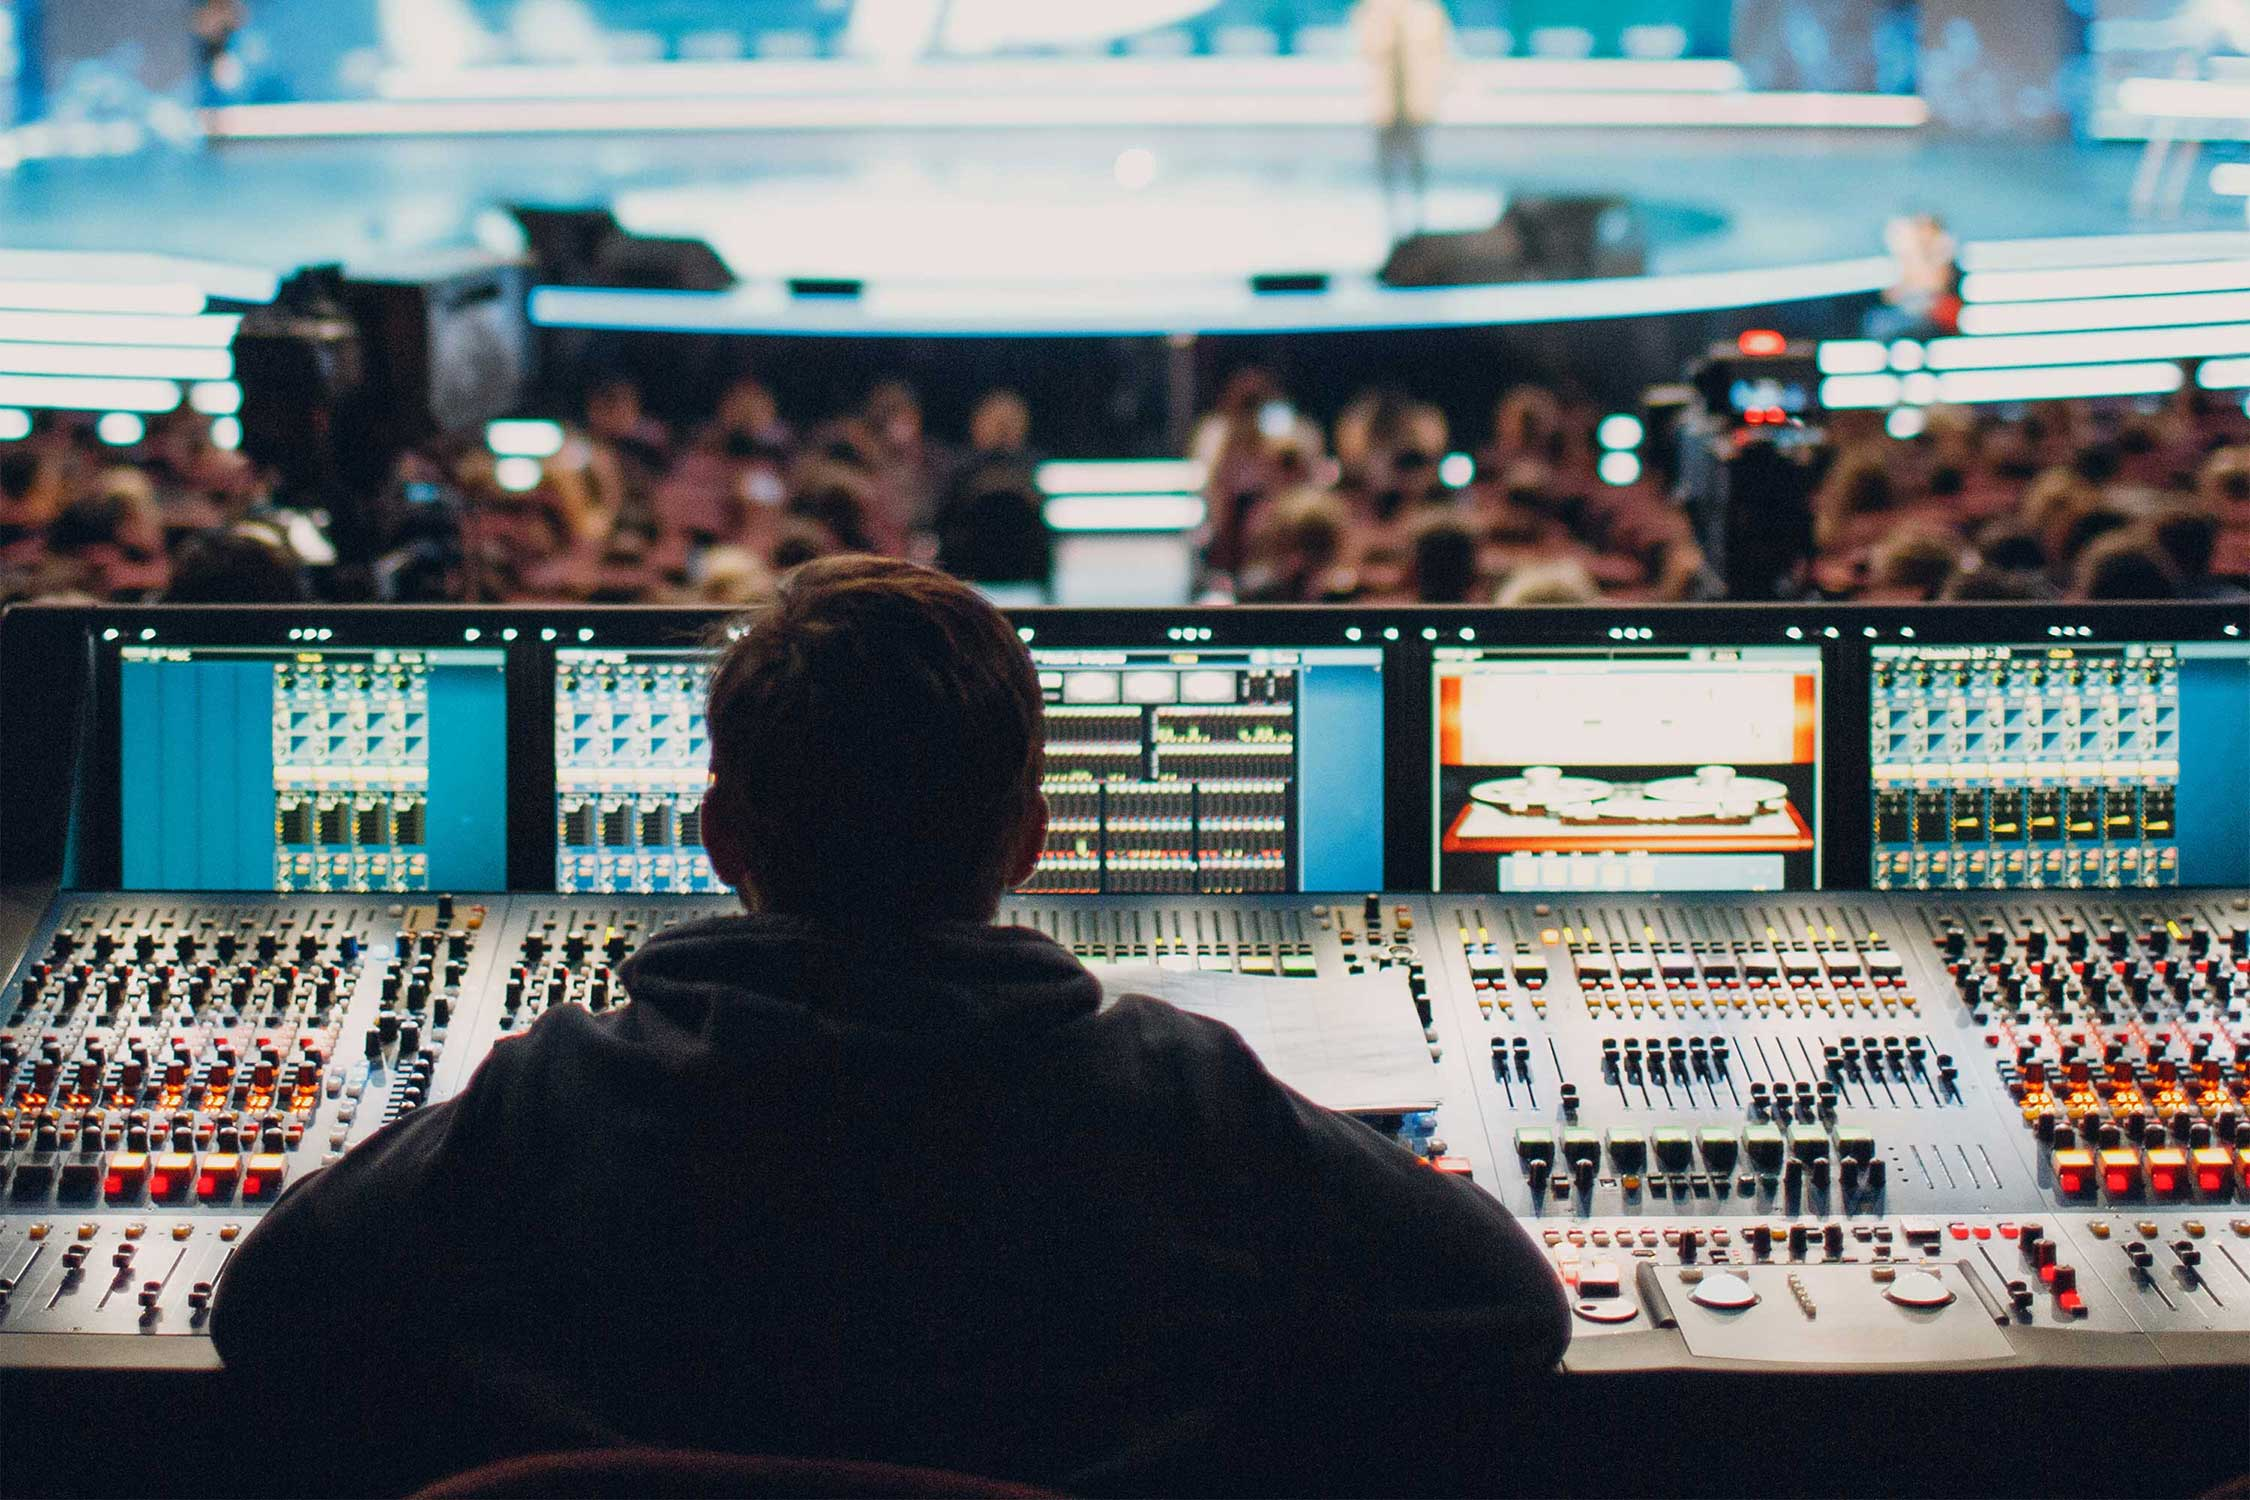 Sound engineer at a live corporate event